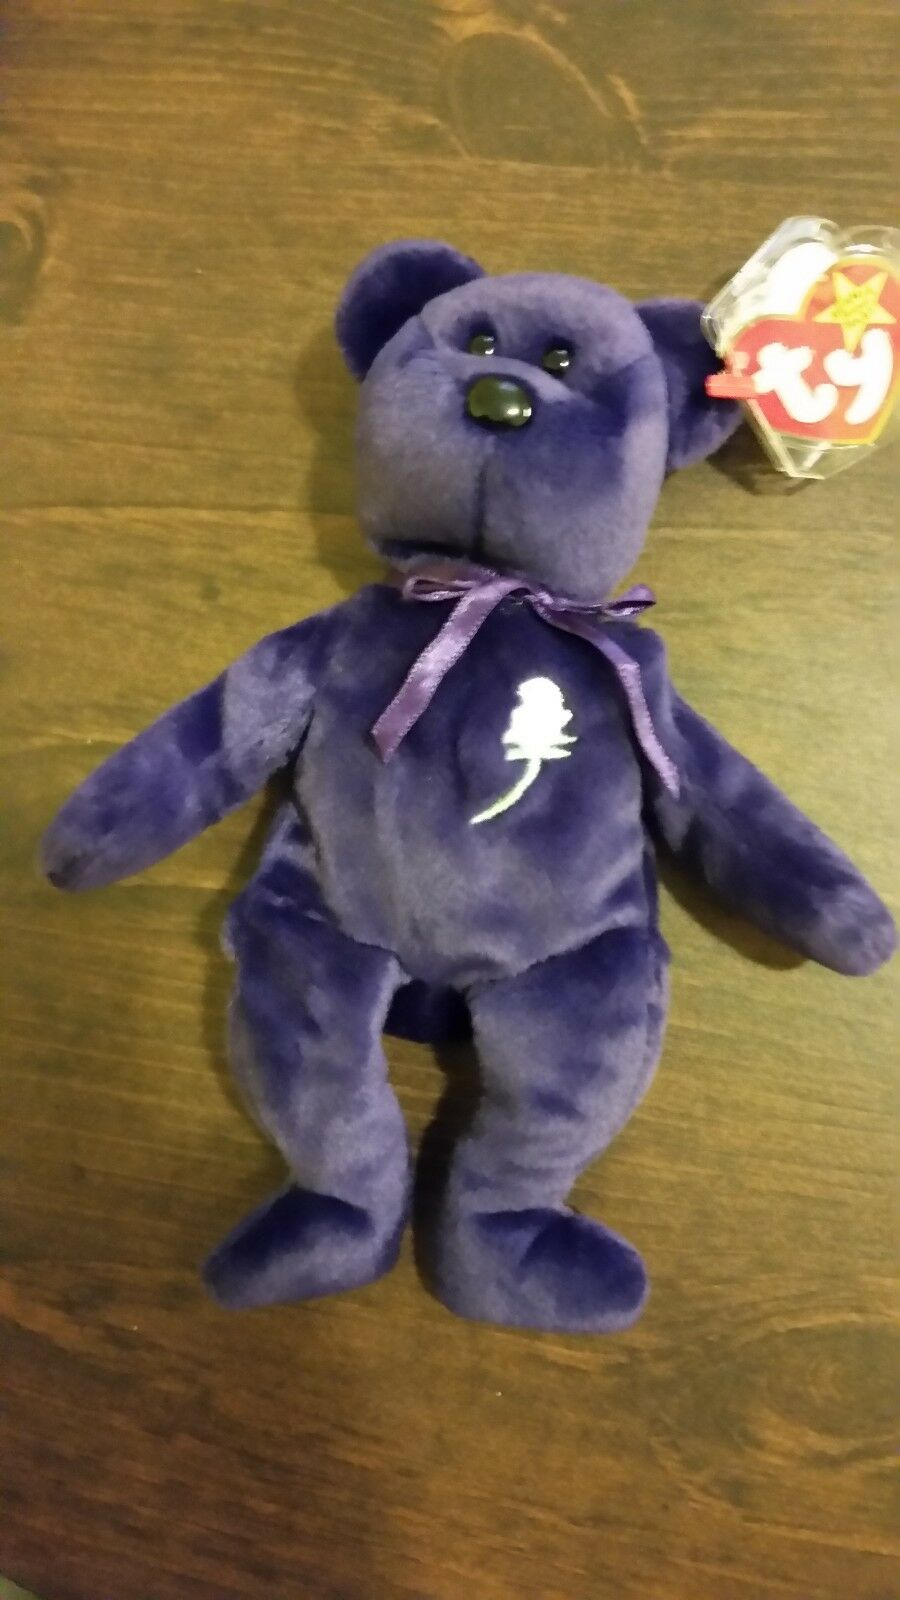 Ty Beannie Baby 1997 Princess Diana plush, mint condition, retired, with error